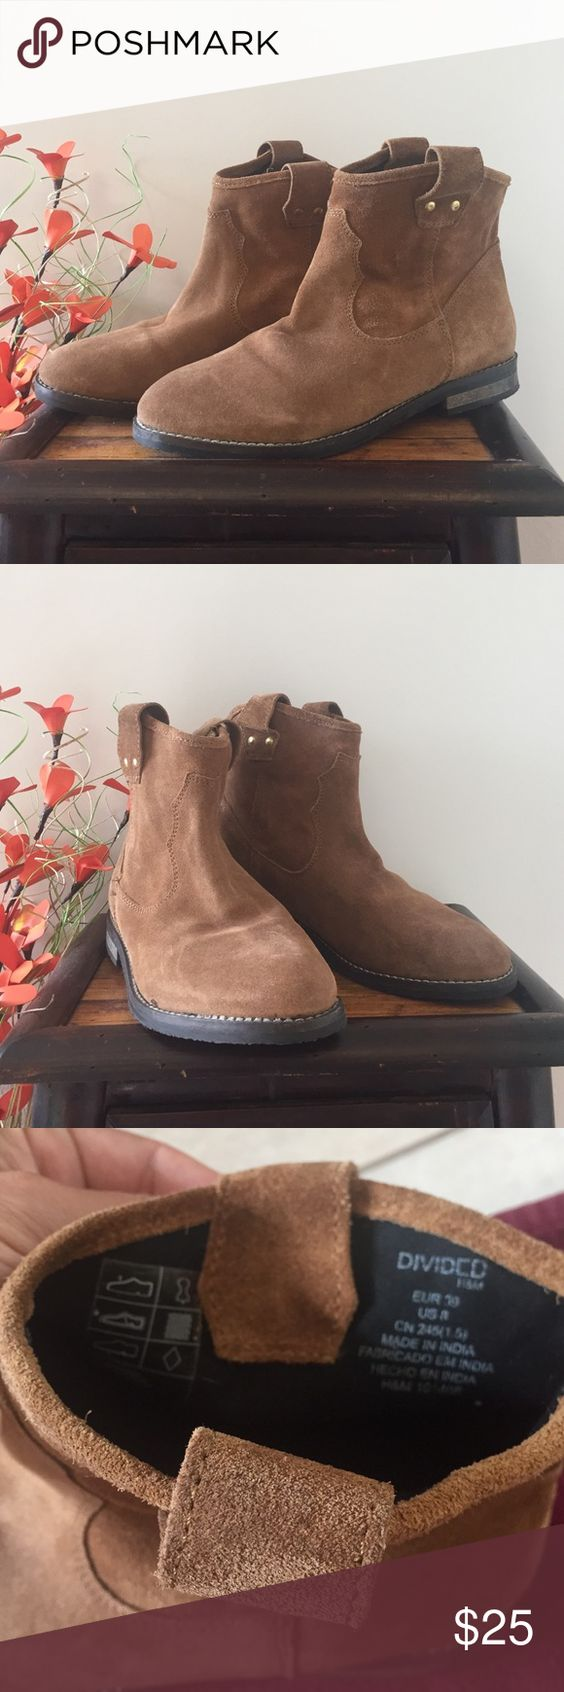 • DIVIDED BOOTS • Bought from H&M & only worn twice • Genuine leather • DIVIDED BY H&M Ankle Boots• pull on • the right boot has a glue mark but I purchased them like this • good condition Divided Shoes Ankle Boots & Booties